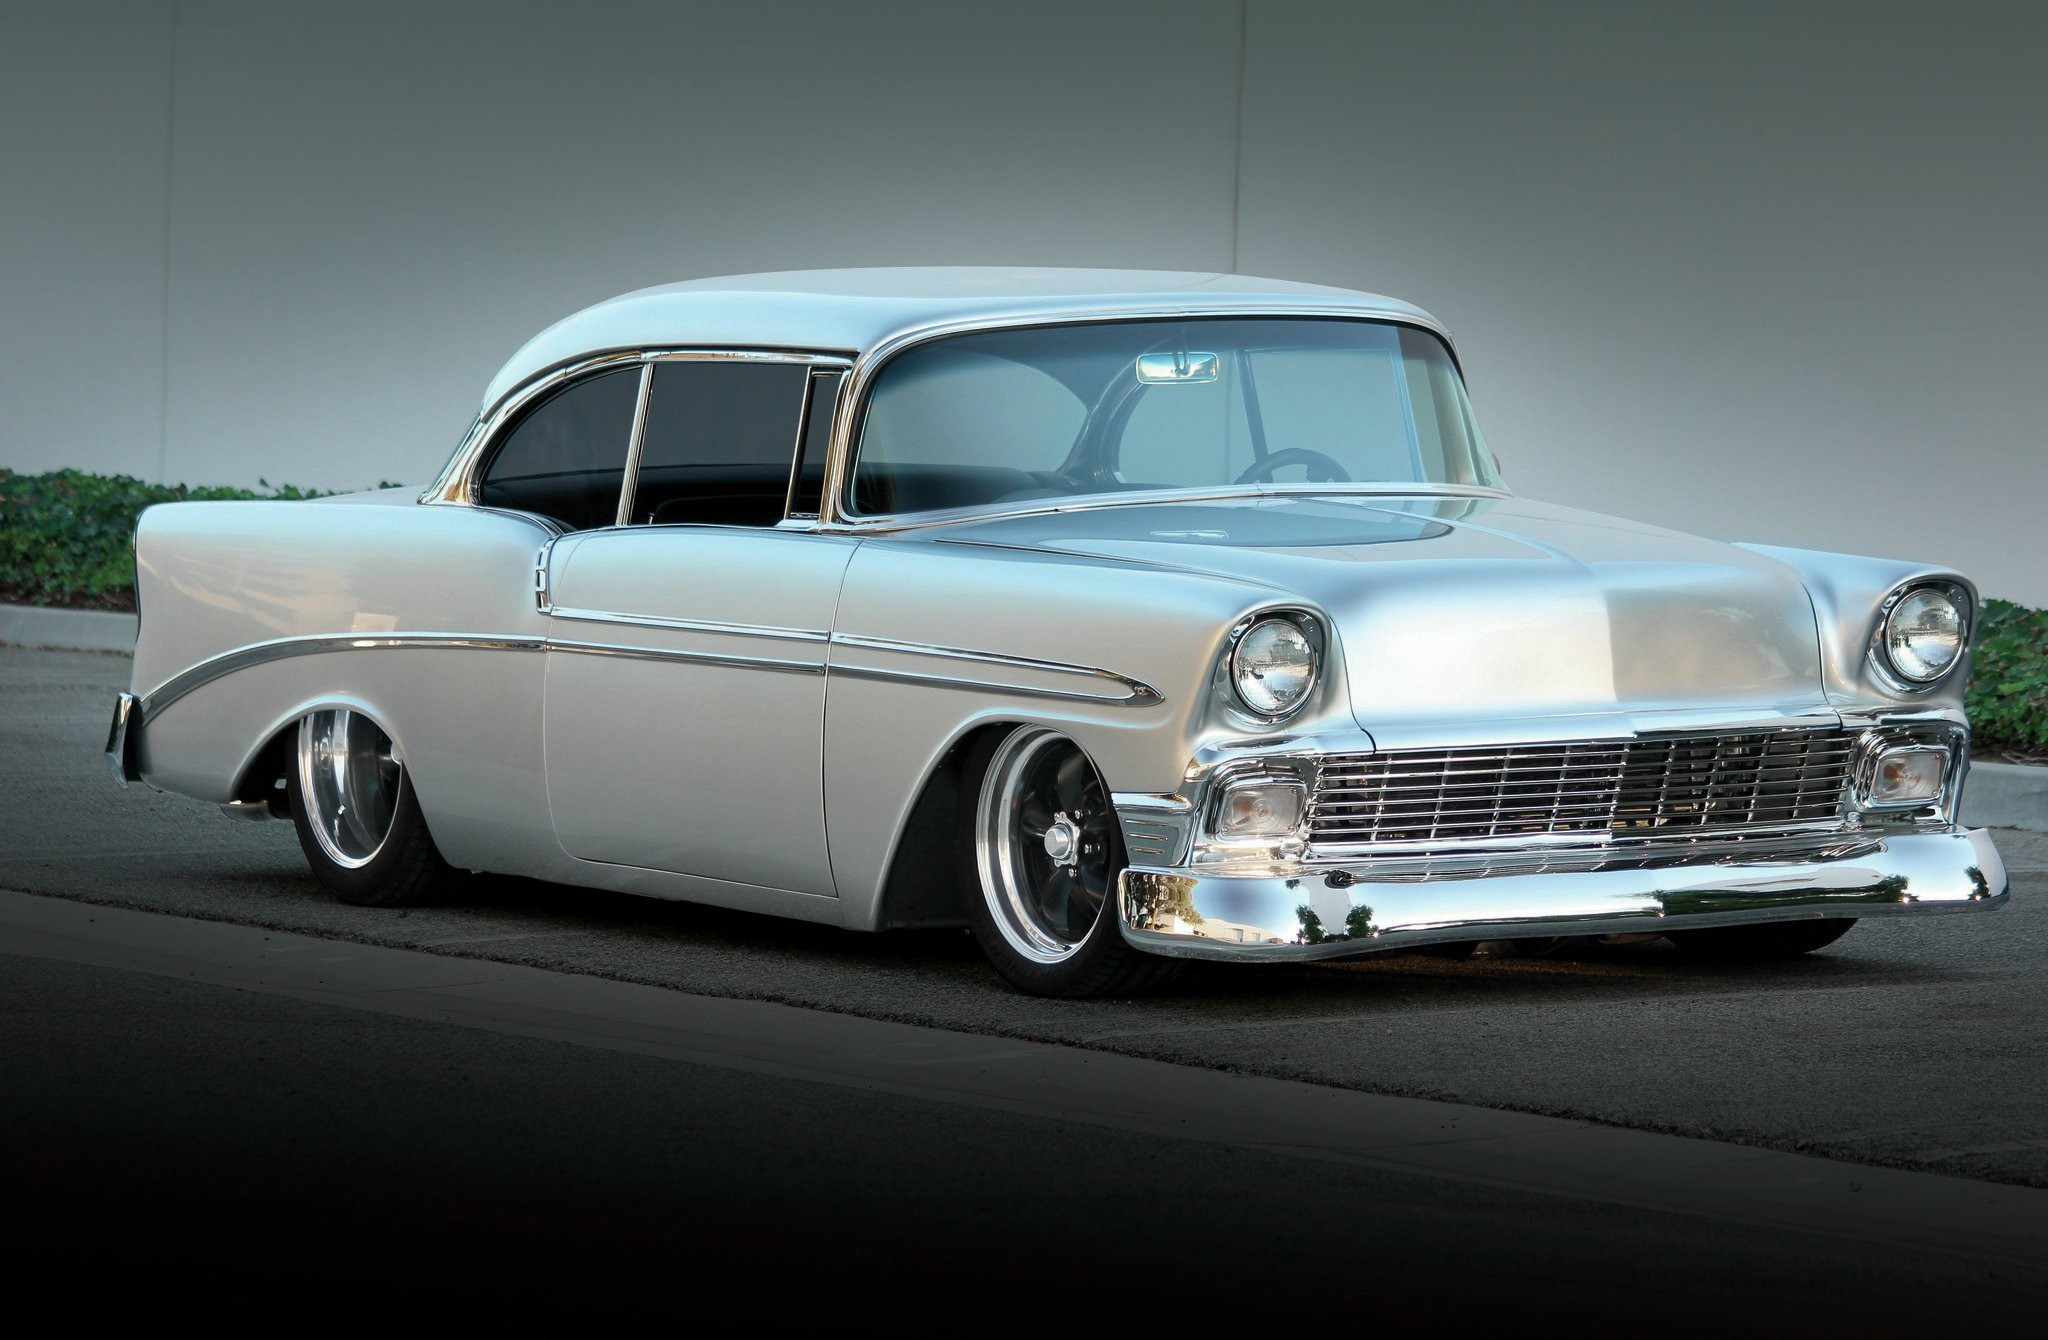 2048x1340 Chevrolet Bel Air Wallpapers